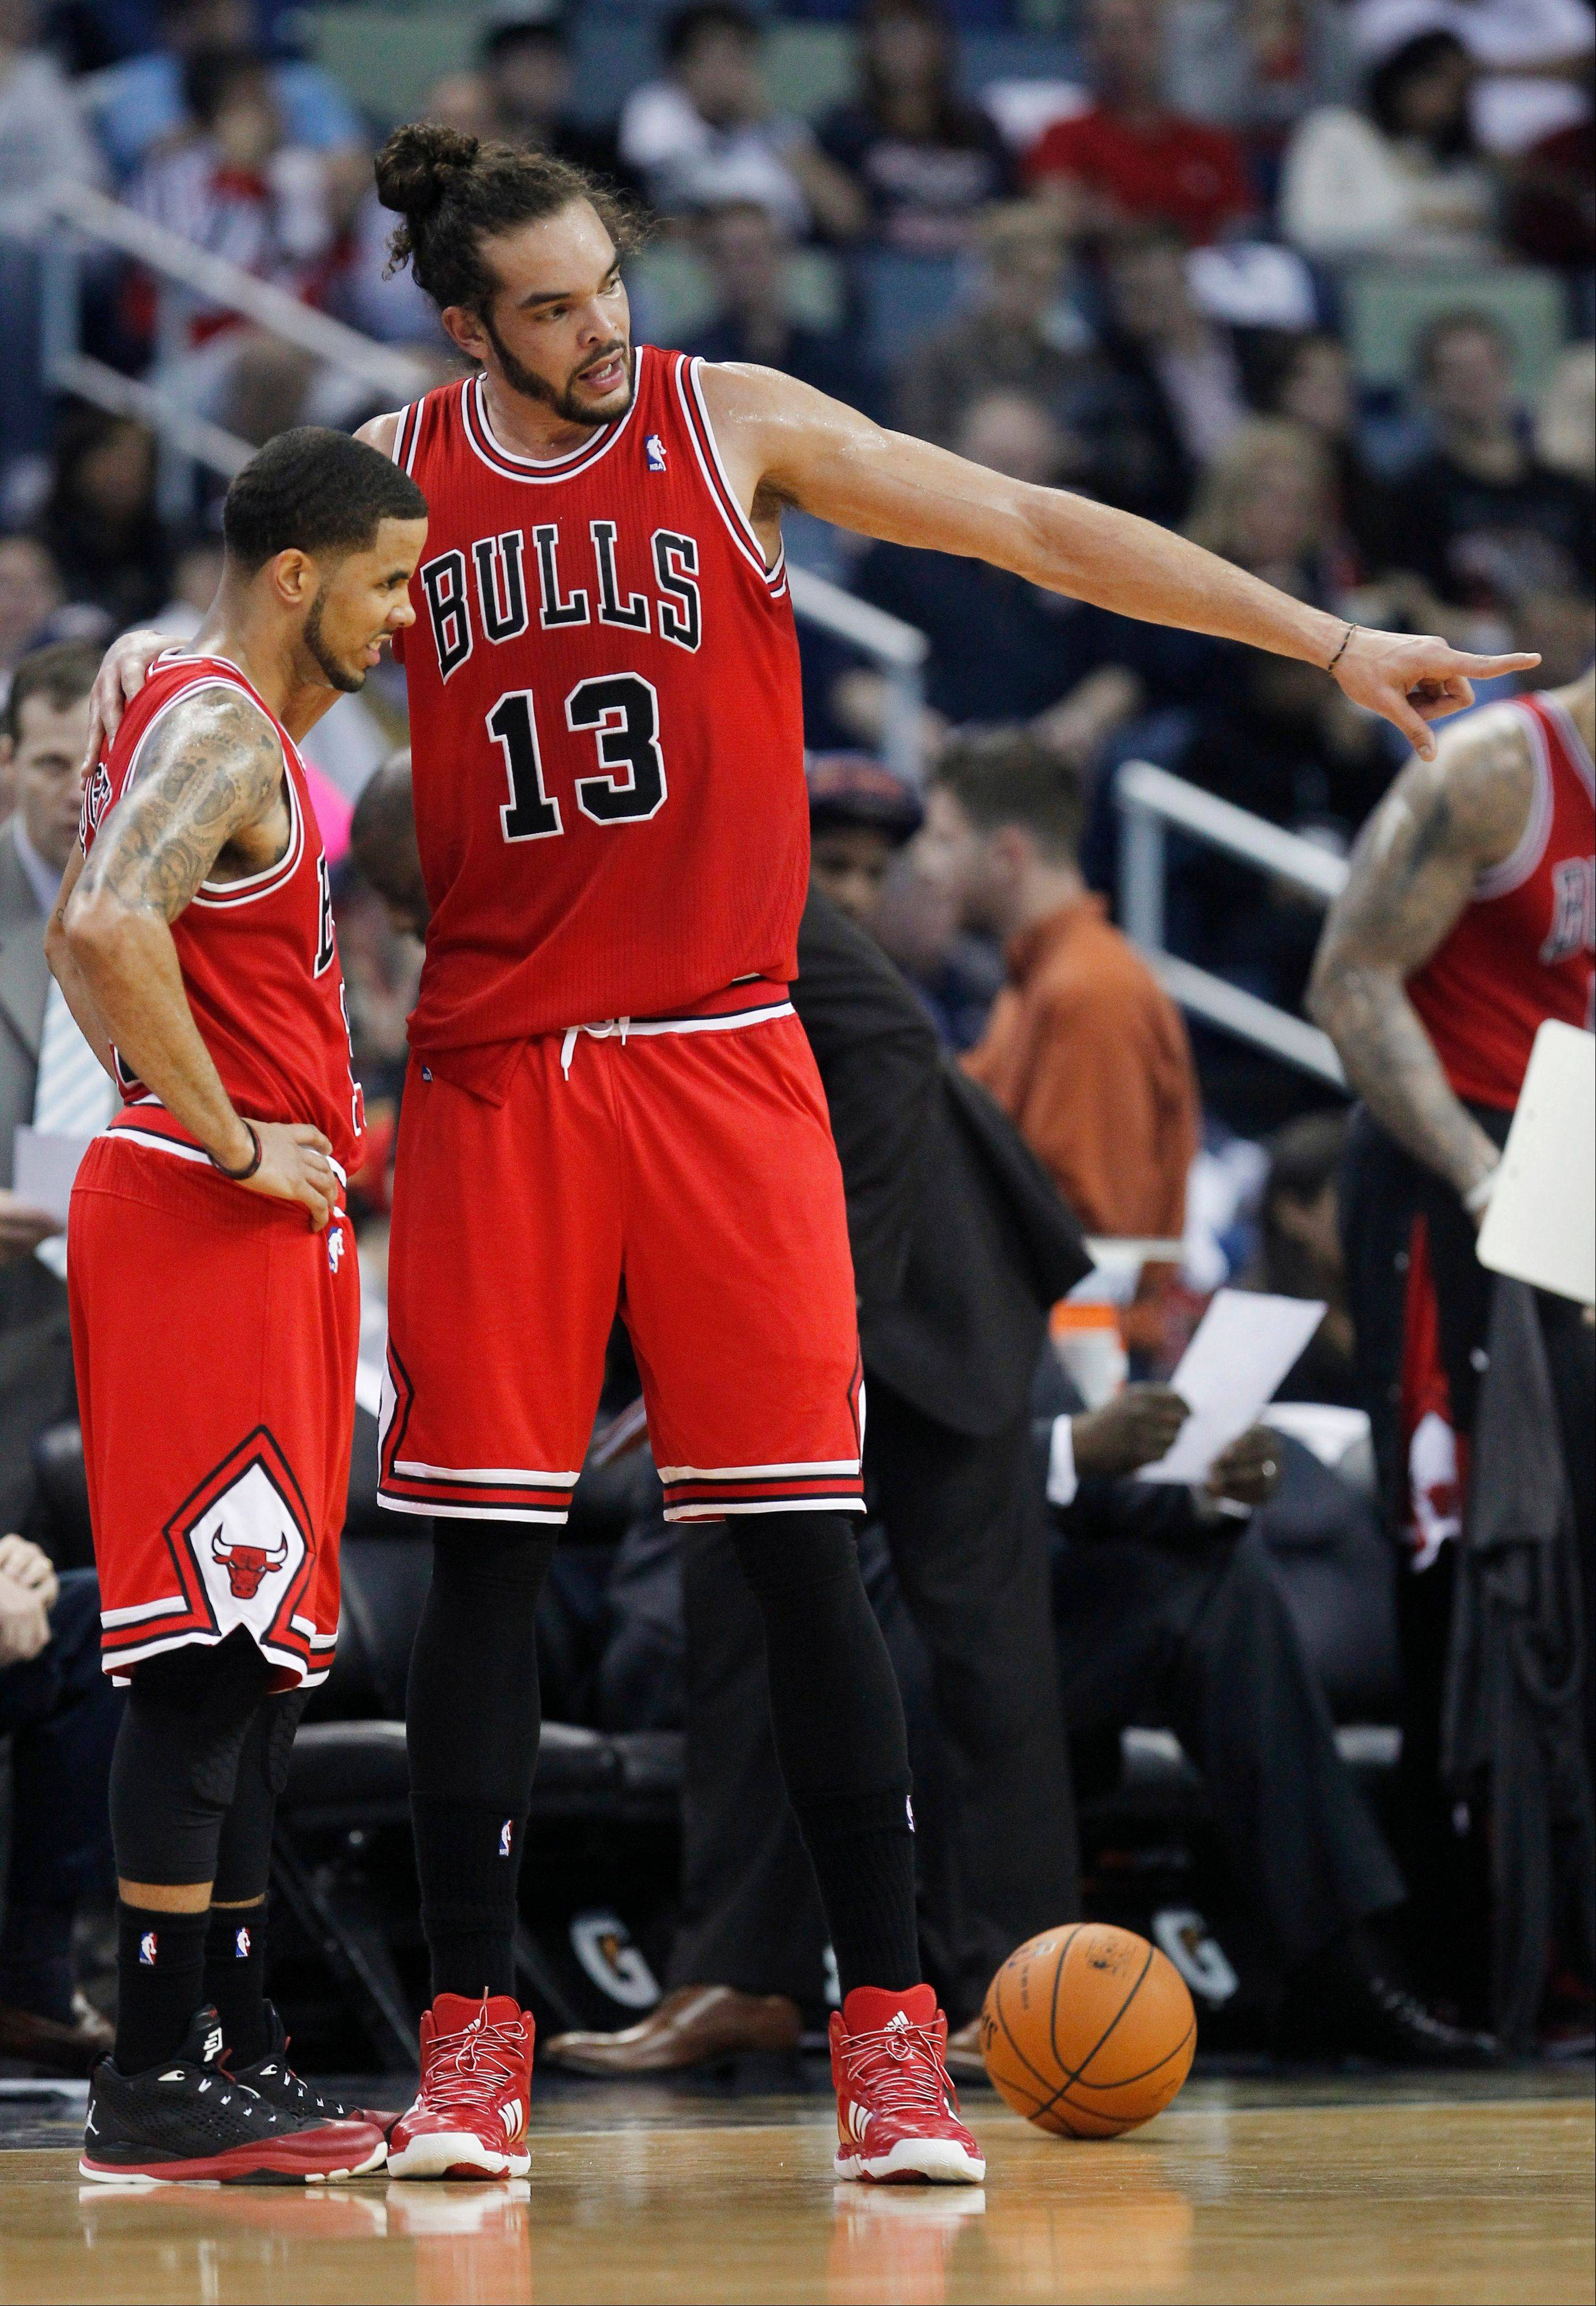 Center Joakim Noah is the Bulls� first-half MVP and guard D.J. Augustin is the Bulls� most improved player, according to Mike McGraw.